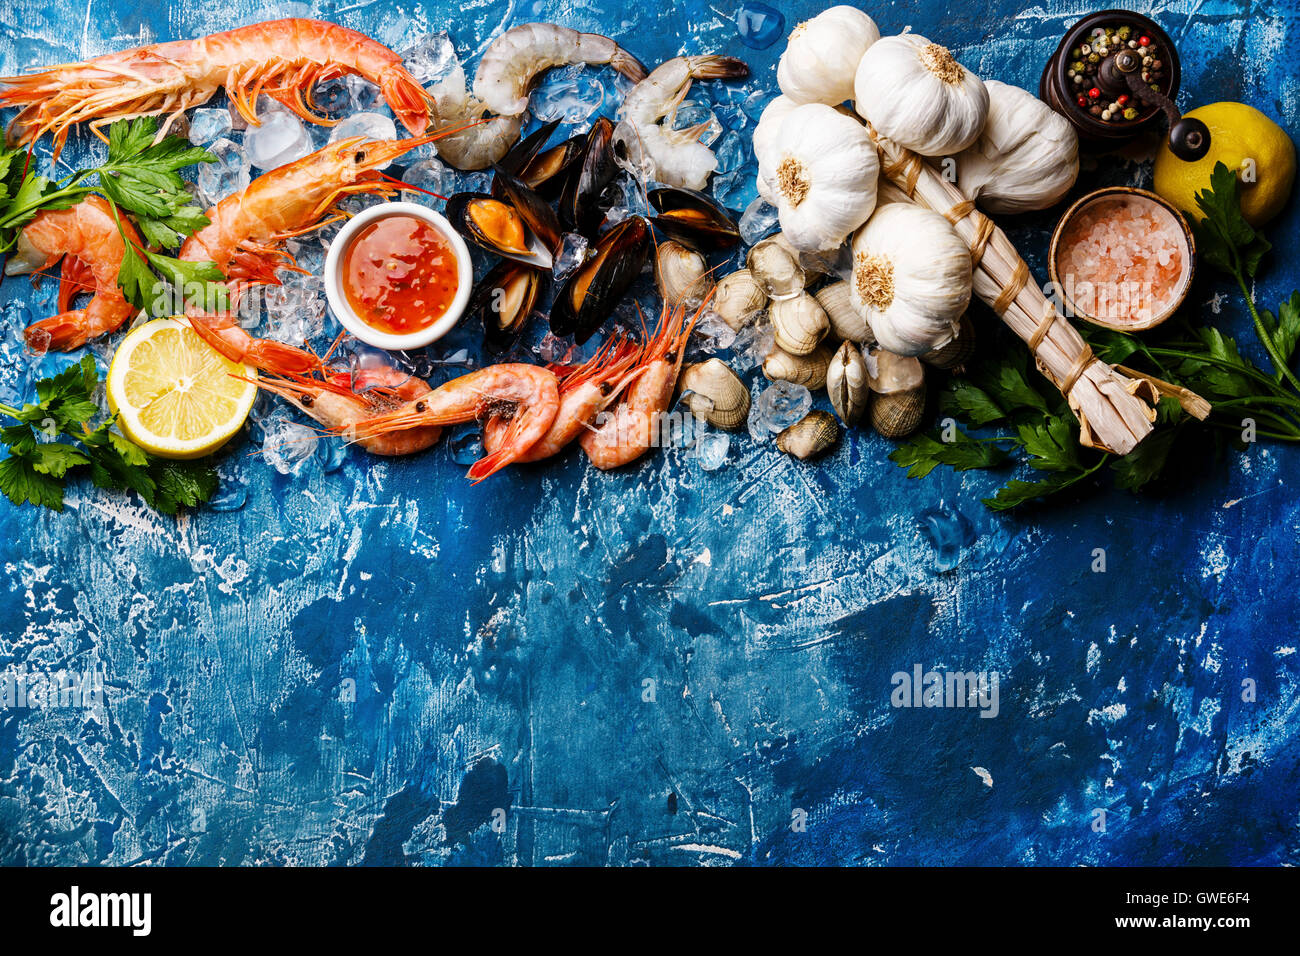 Seafood copy space Background with fresh raw Prawns, Clams, Mussels, Vongole, Shrimps and Ingredients - Stock Image